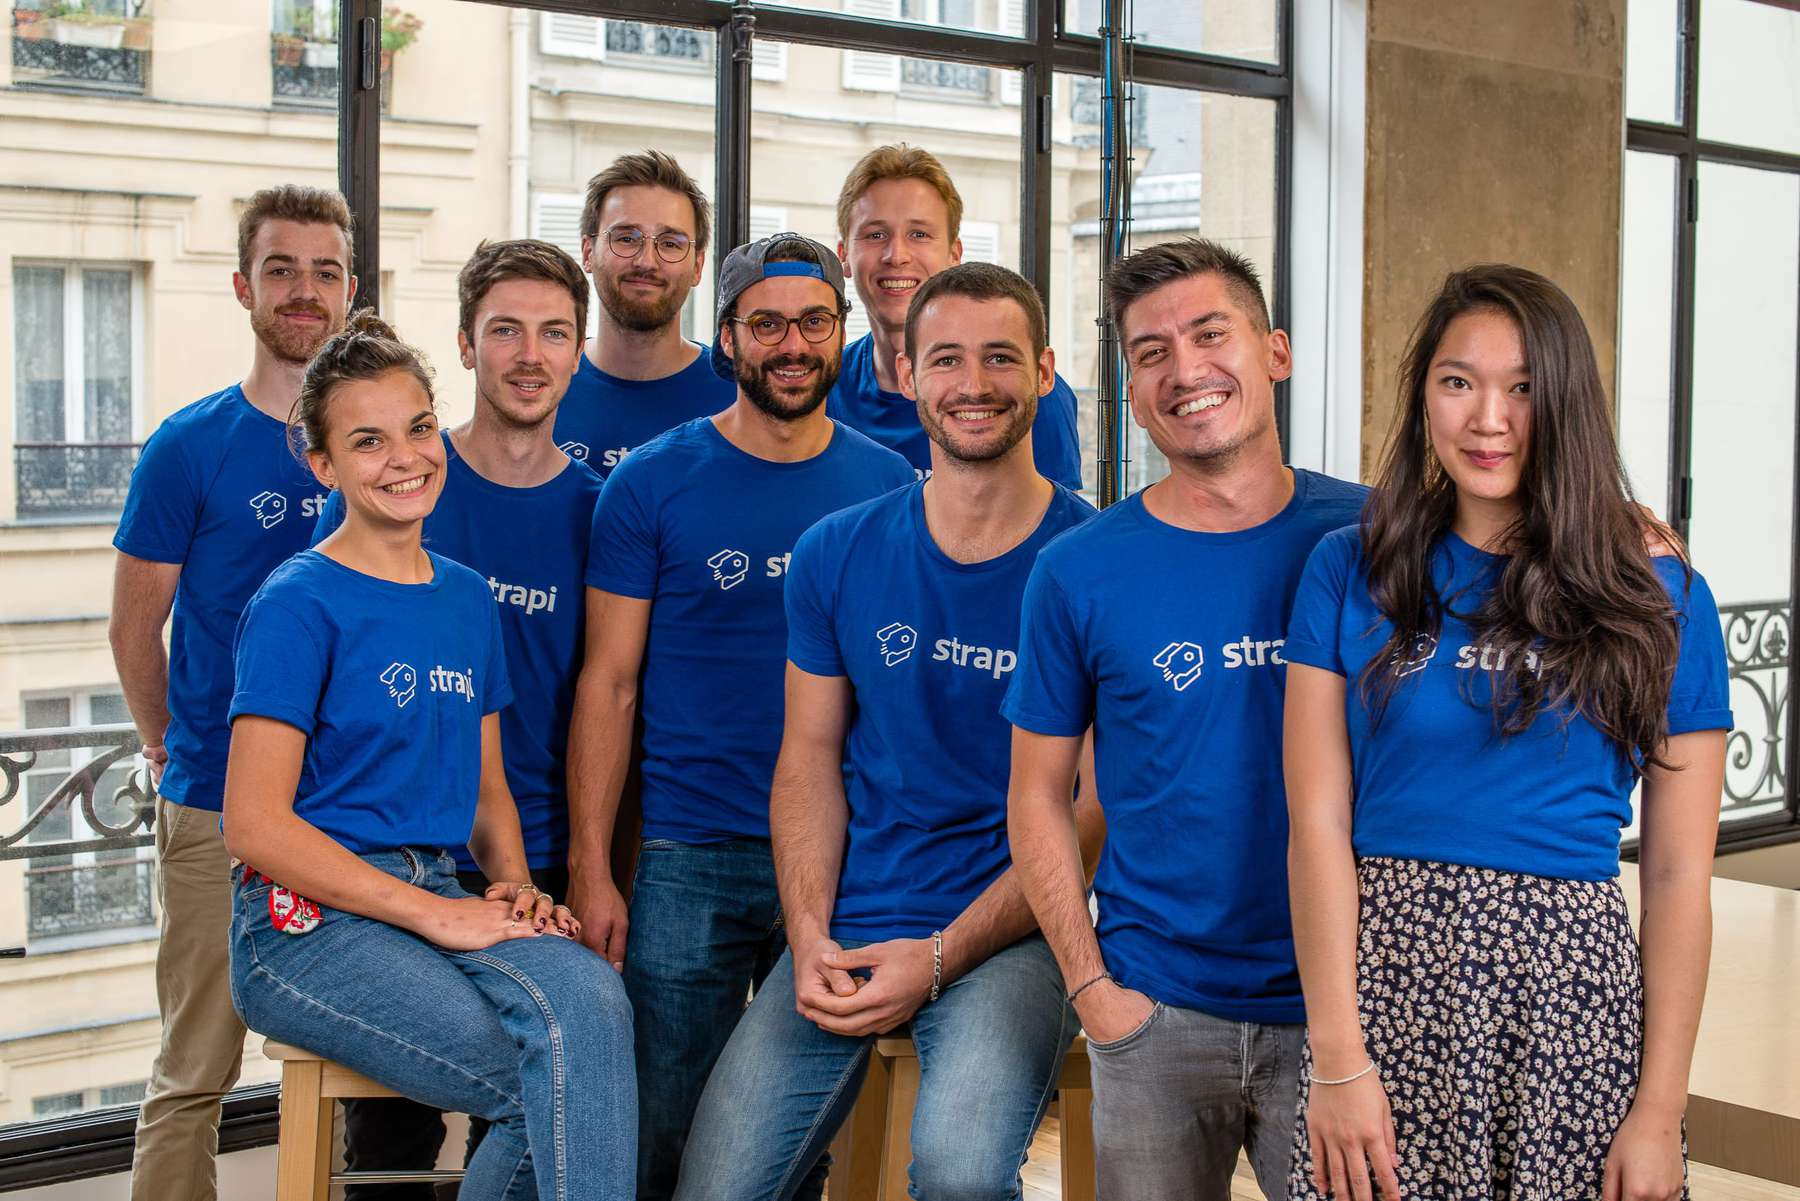 The Strapi team at their Paris office